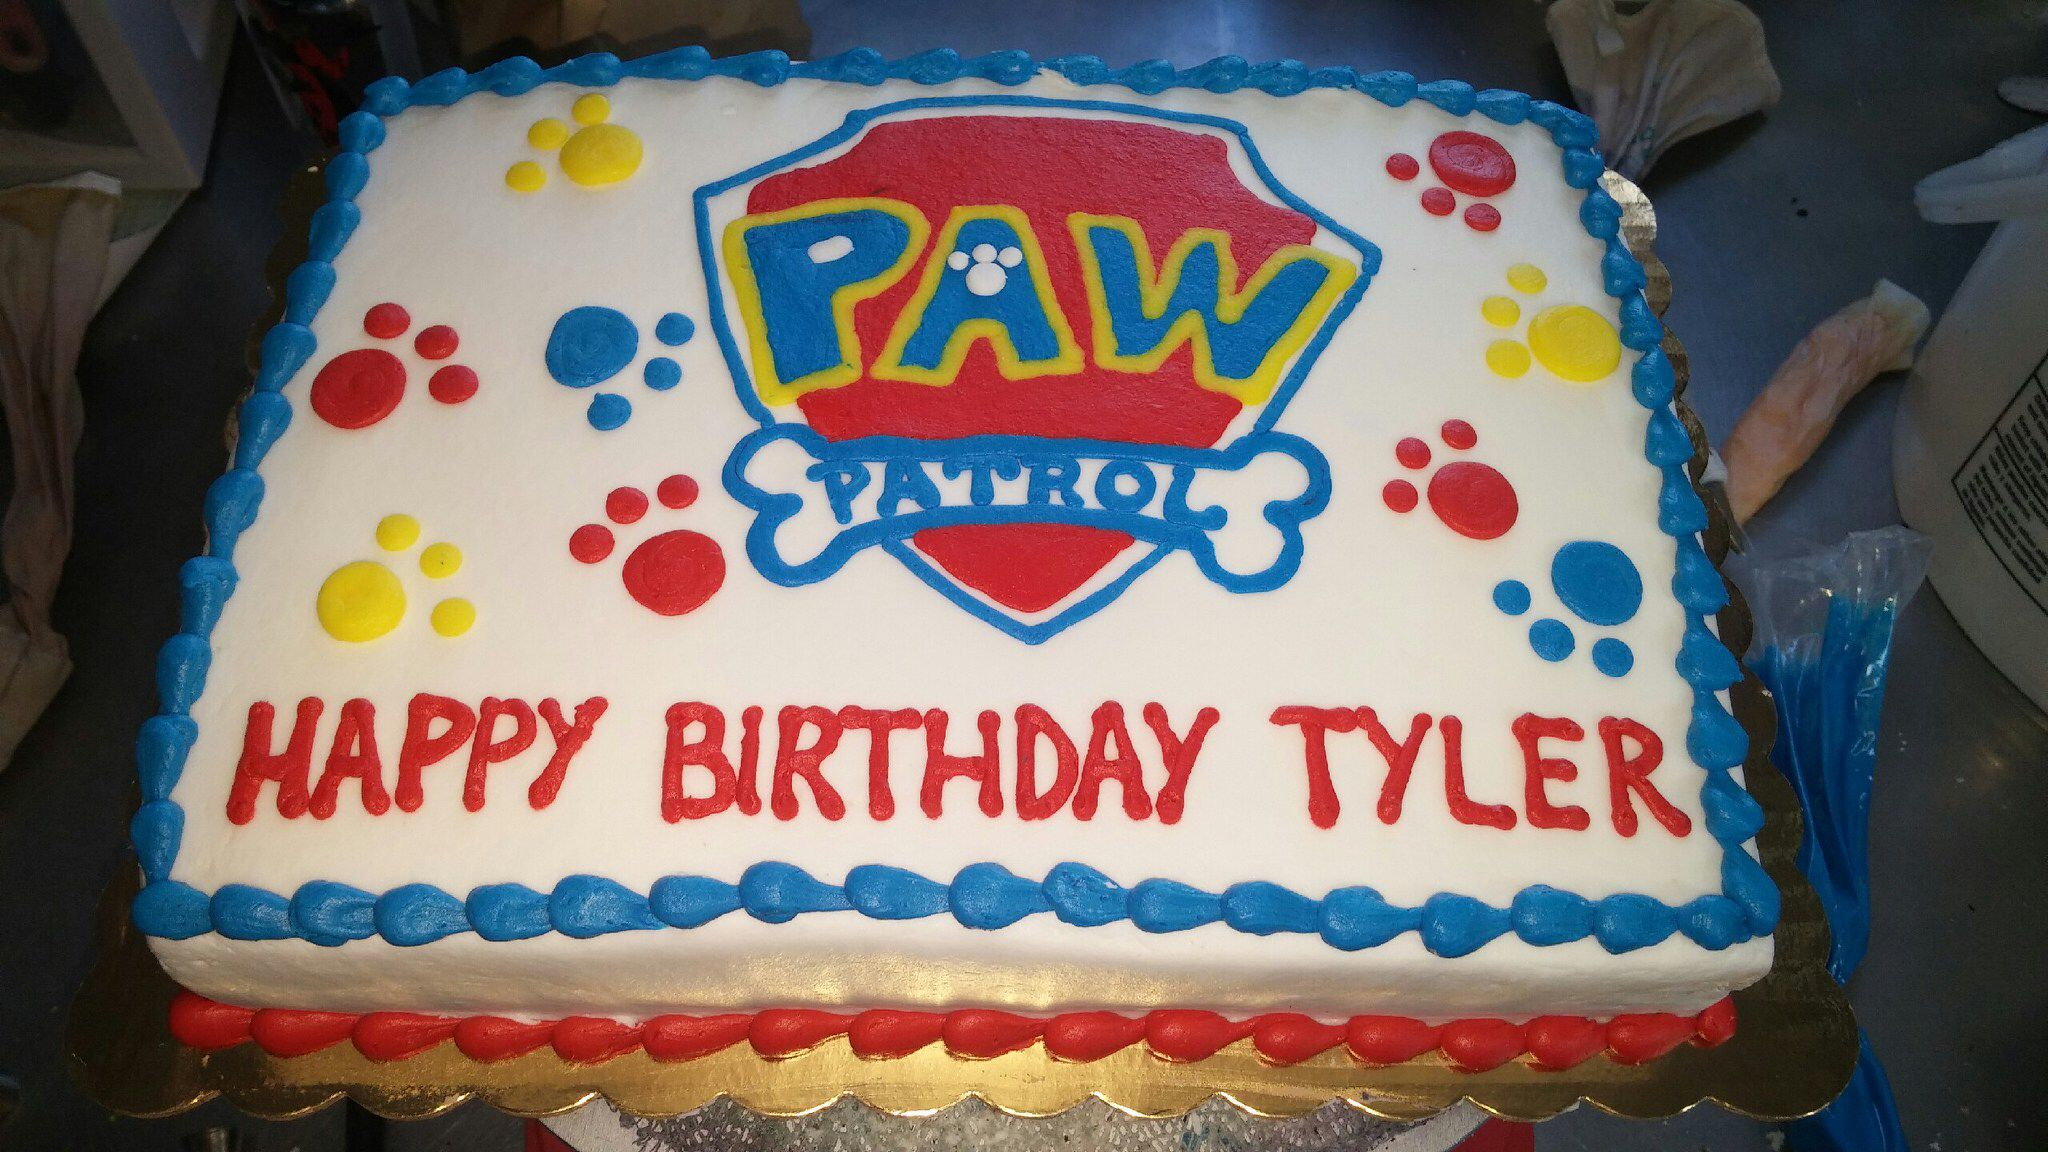 Paw Patrol Sheet Cake From Naegelin S Paw Patrol Birthday Cake